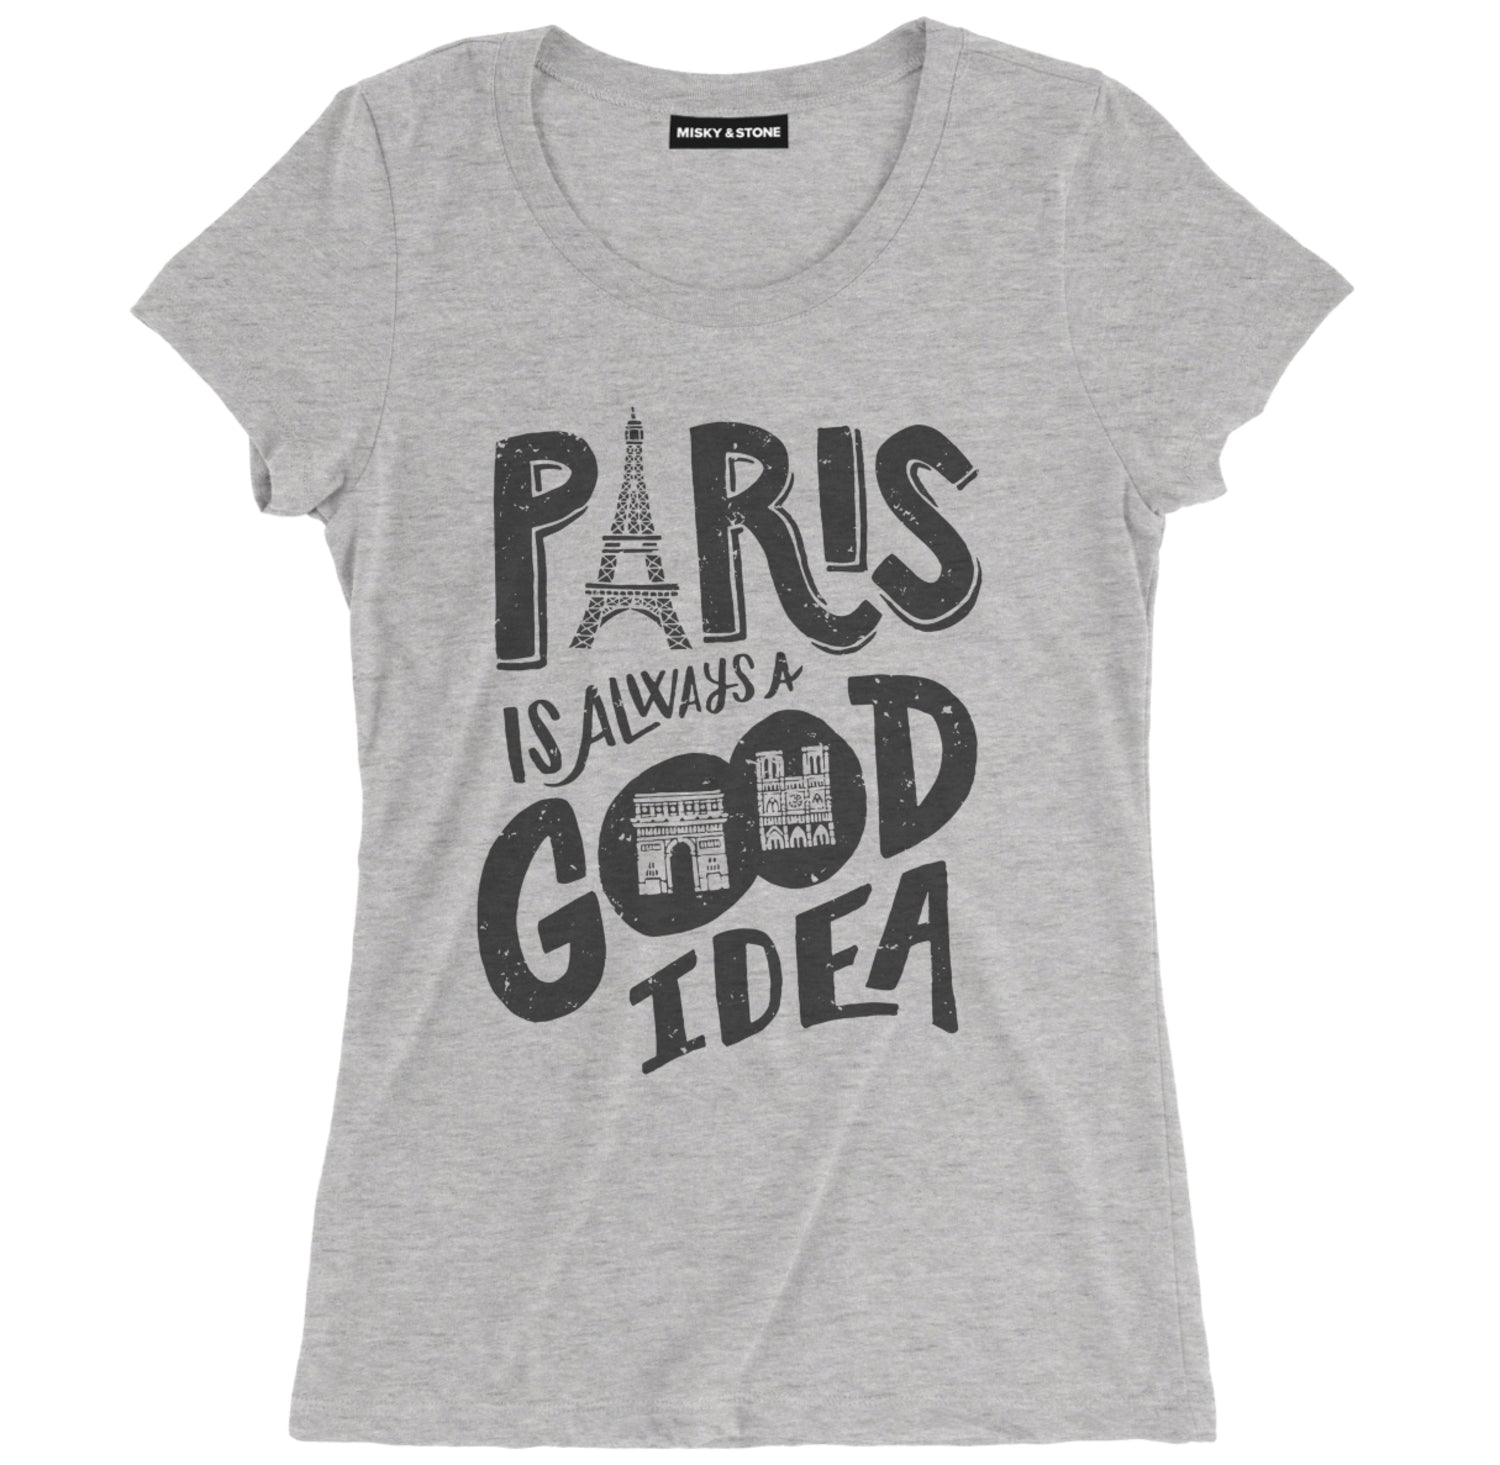 paris is always a good idea shirt, paris shirt, paris t shirt, eiffel tower shirt, eiffel tower t shirt